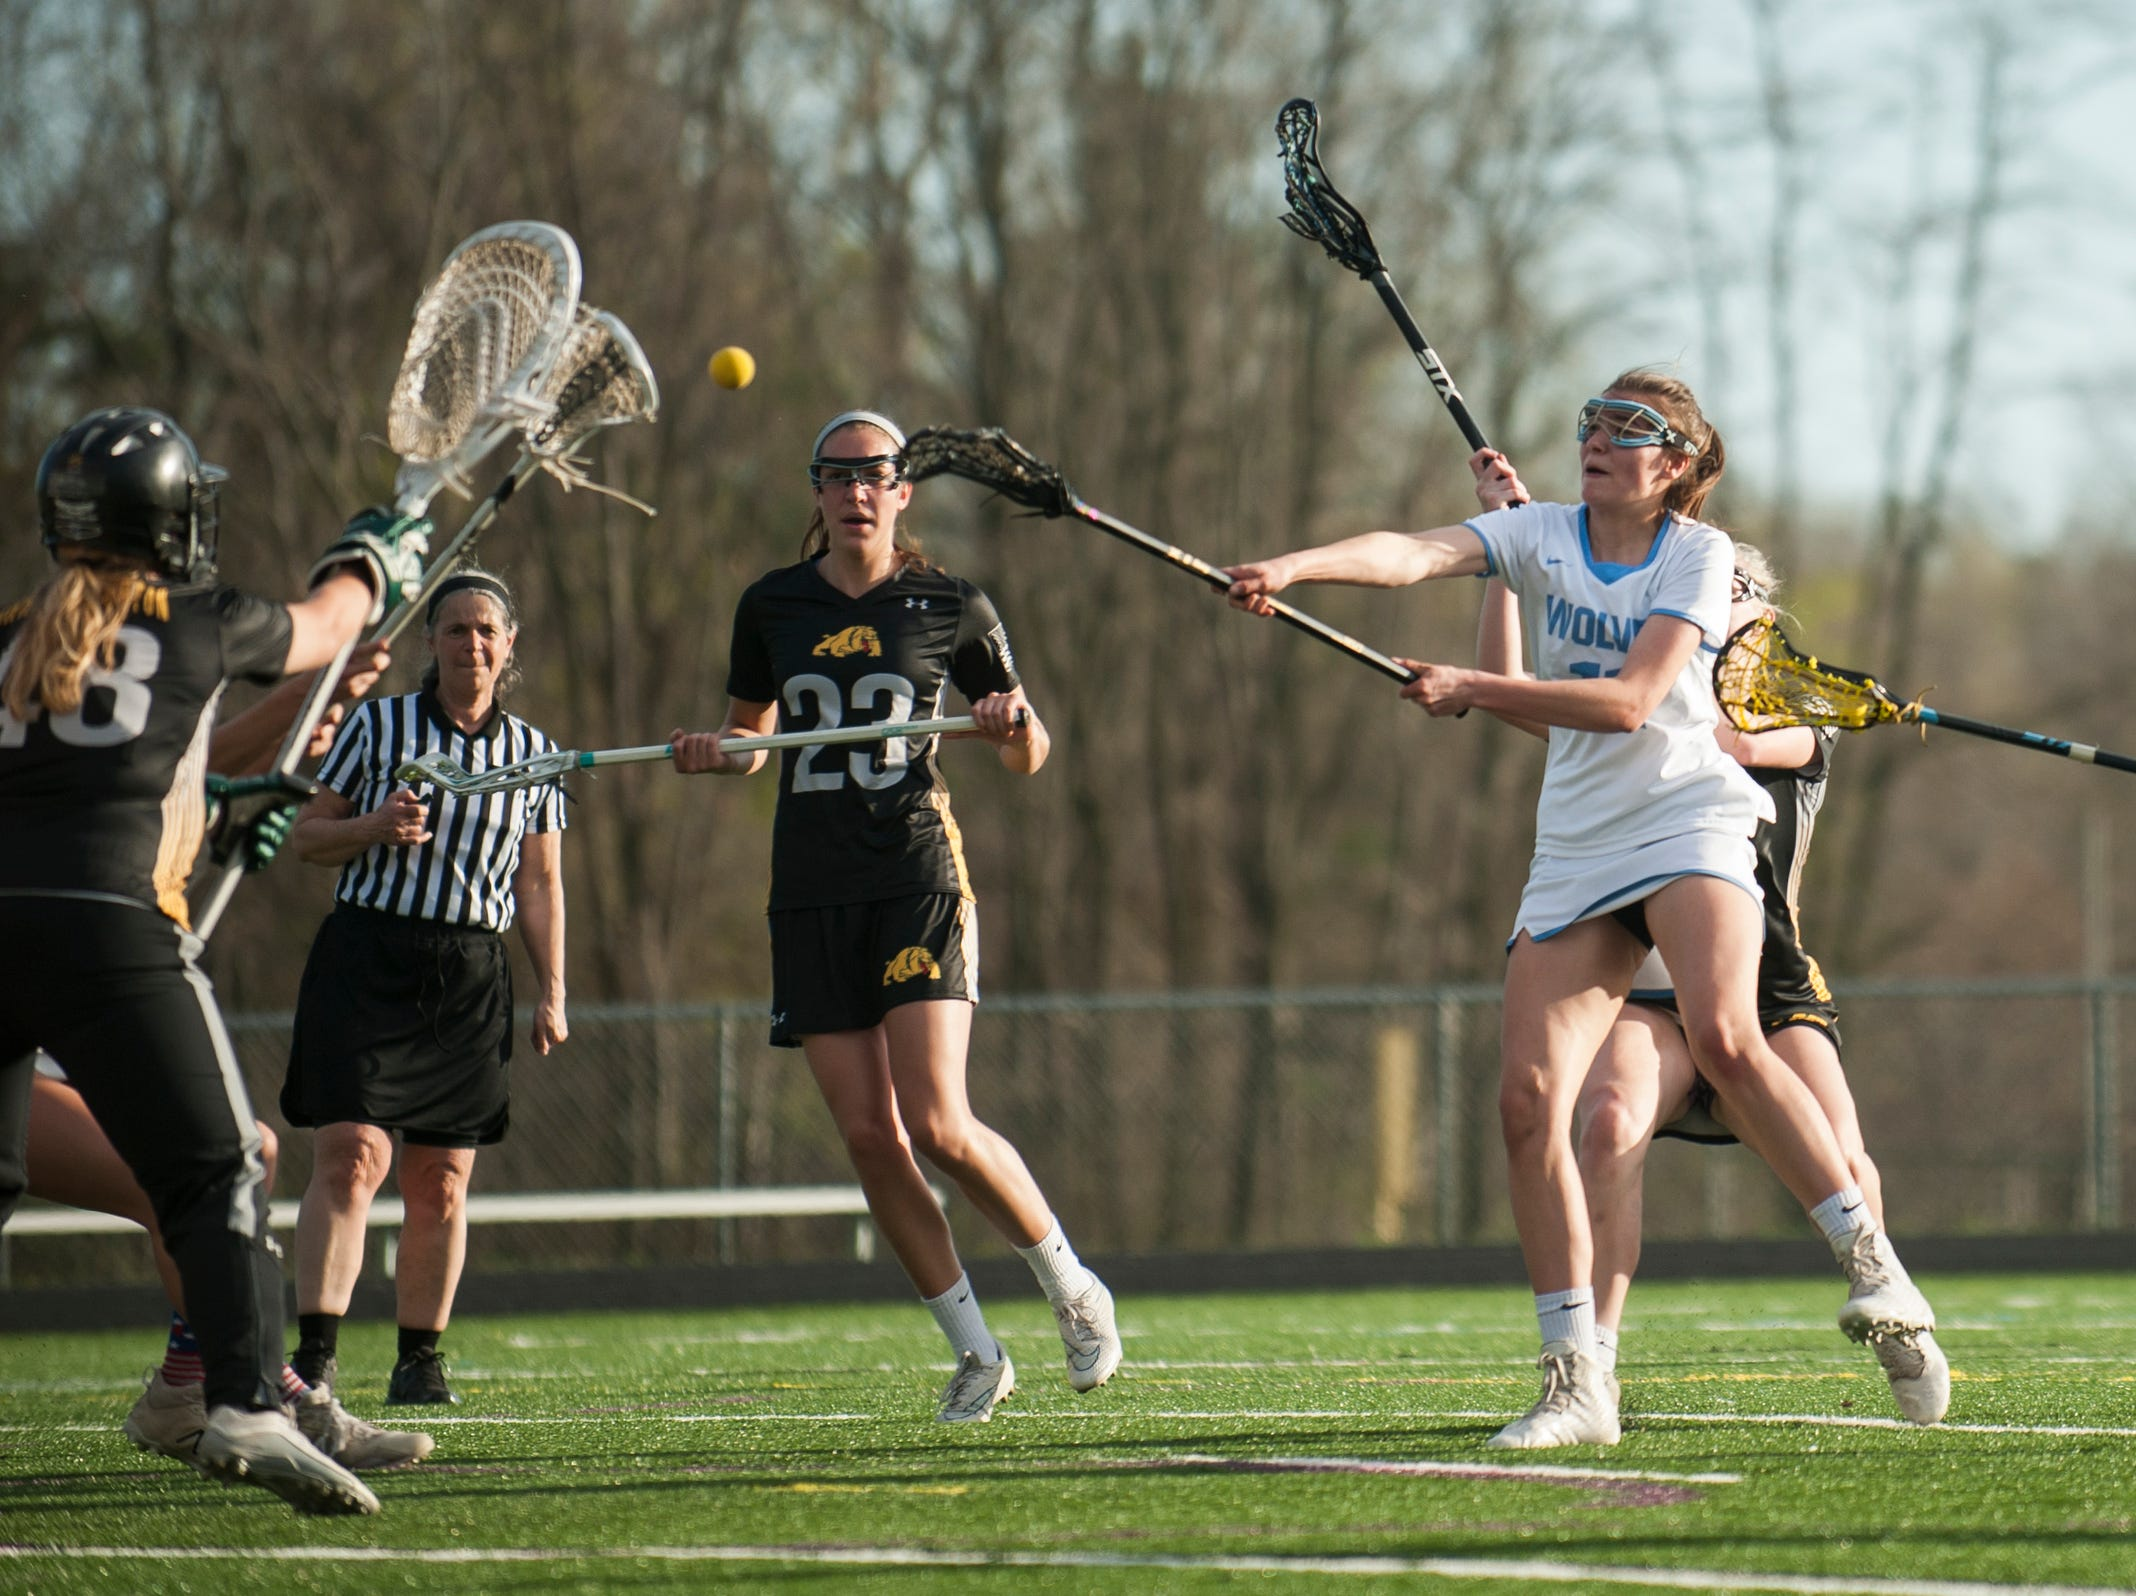 South Burlington's Christina March (11) shoots the ball during the high school girls lacrosse game between Burr and Burton Bulldogs and the South Burlington Wolves at Munson Field on Monday afternoon May 6, 2019 in South Burlington, Vermont.